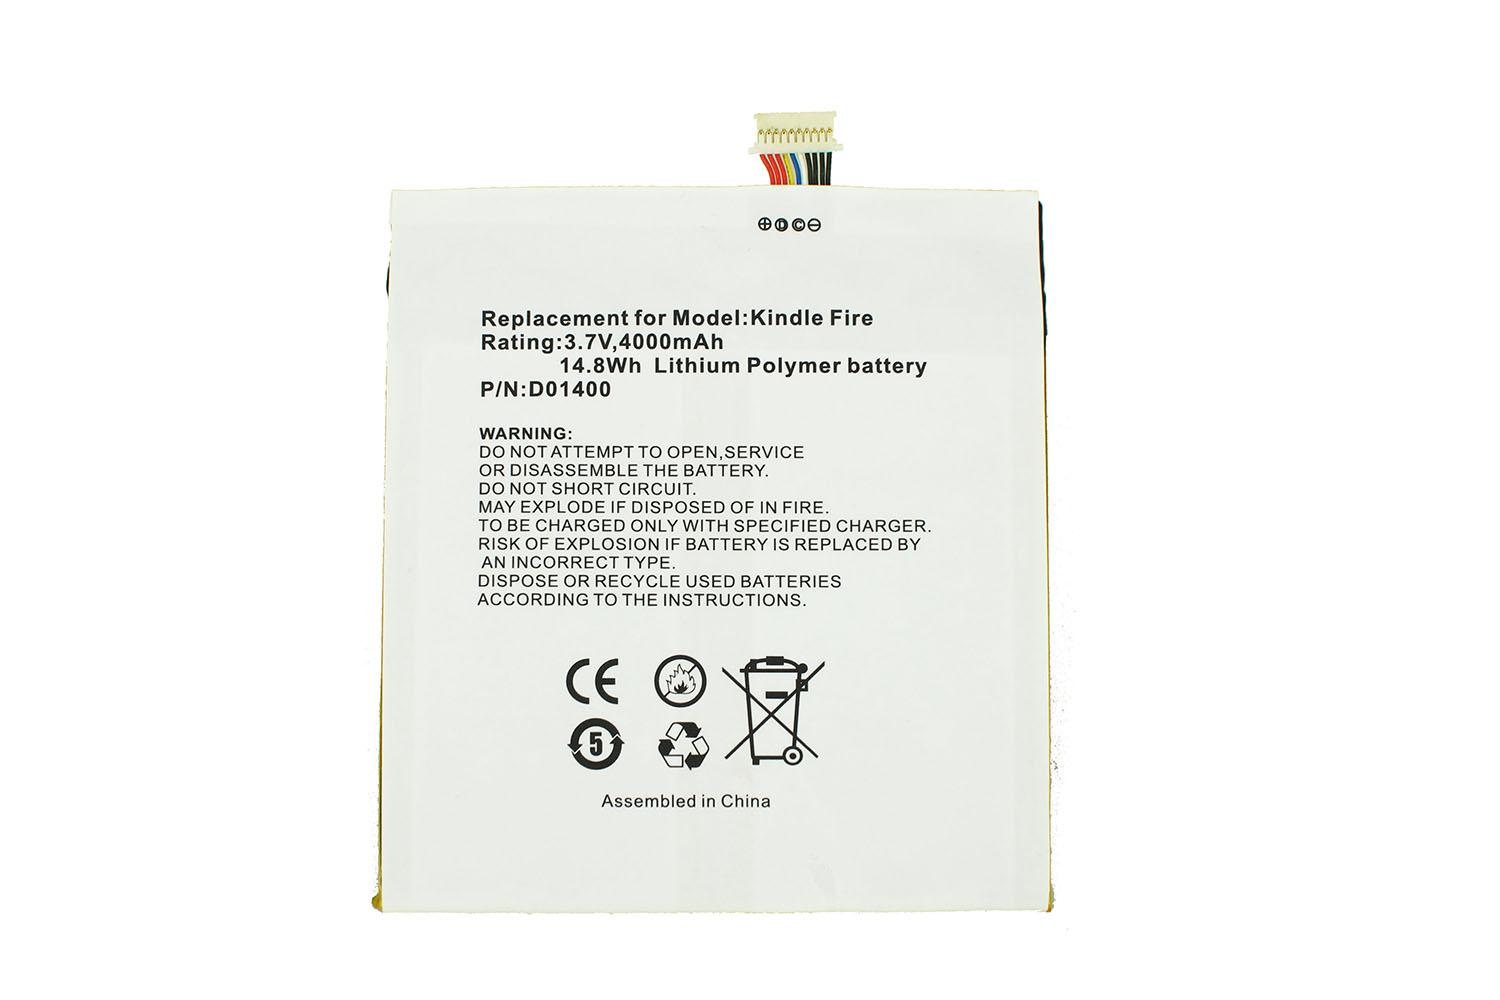 370 V Replacement For Amazon D01400 Kindle Fire Tablet Pc Batteries